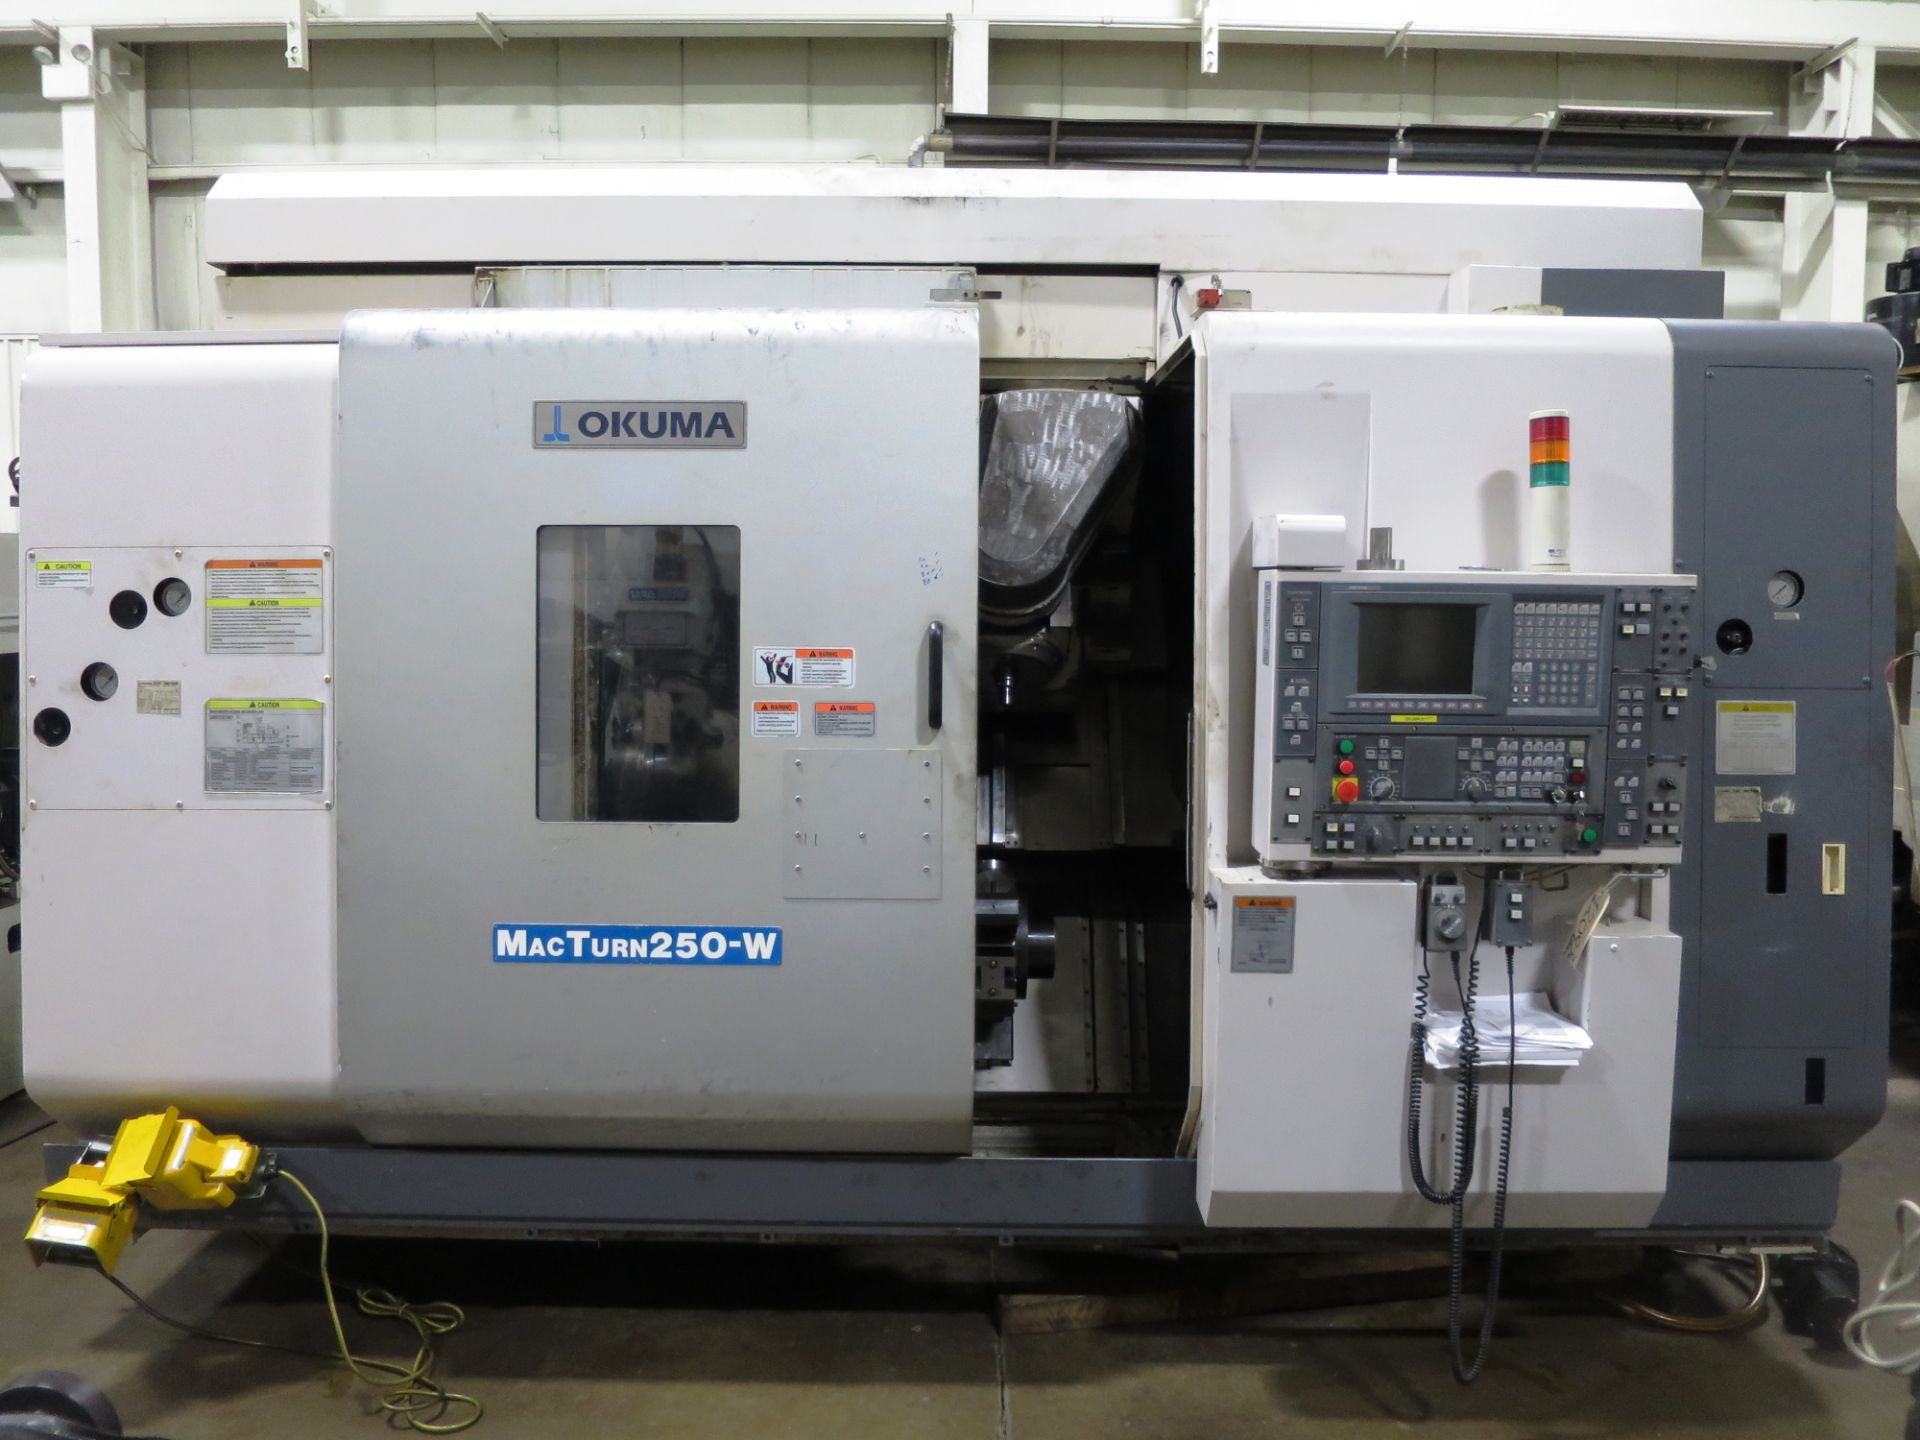 Lot 30 - Okuma Macturn 250W 9-Axis CNC Turn Mill Center Lathe, S/N 106646, New 2005